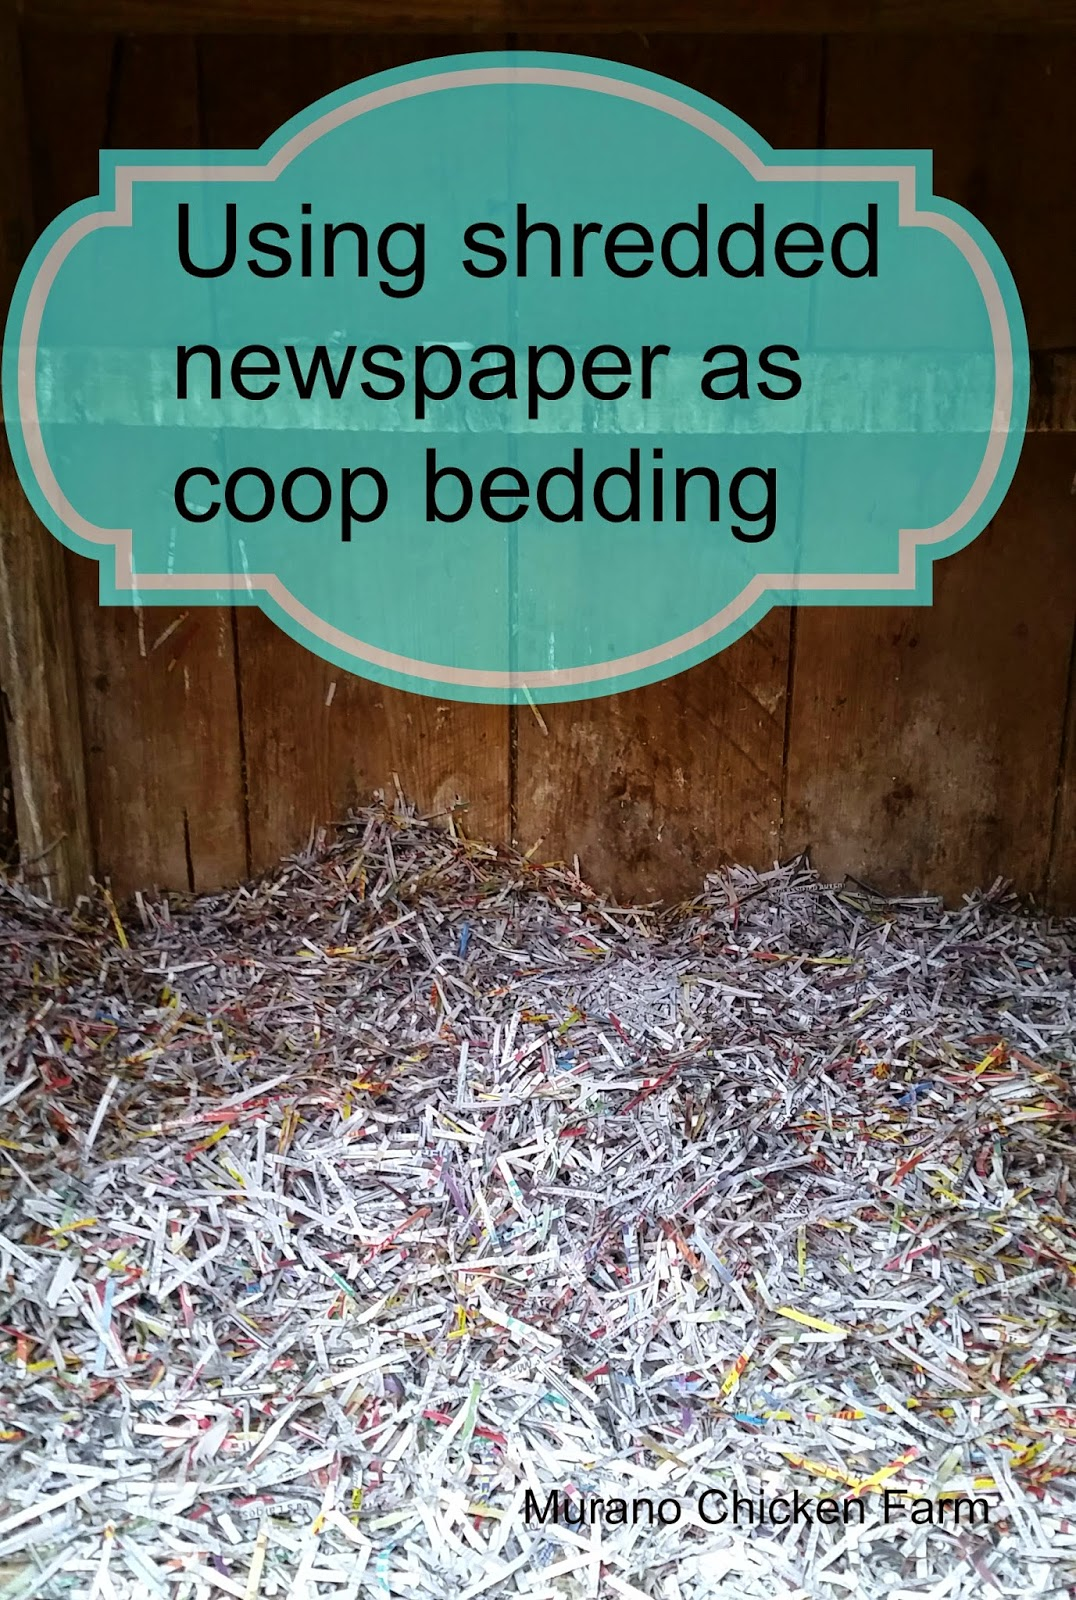 newspaper coop bedding